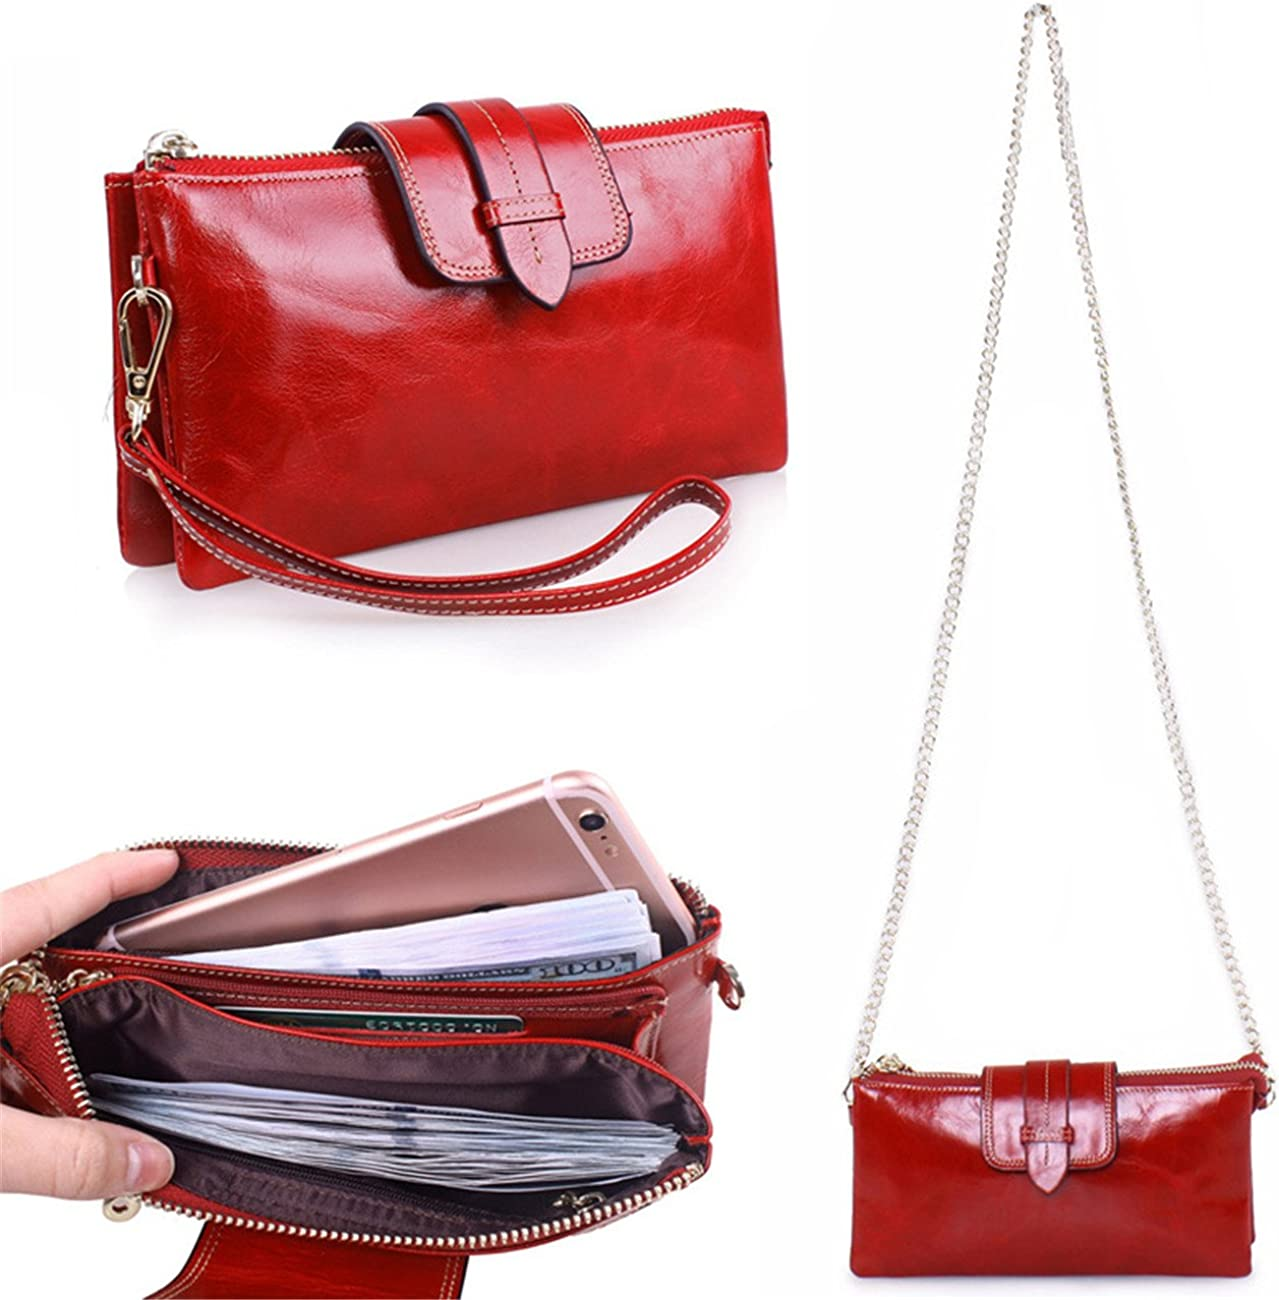 Women Fashion Genuine Leather Wallets Ladies Cowhide Coin Purse Card /& Id Holders Handbags,Red